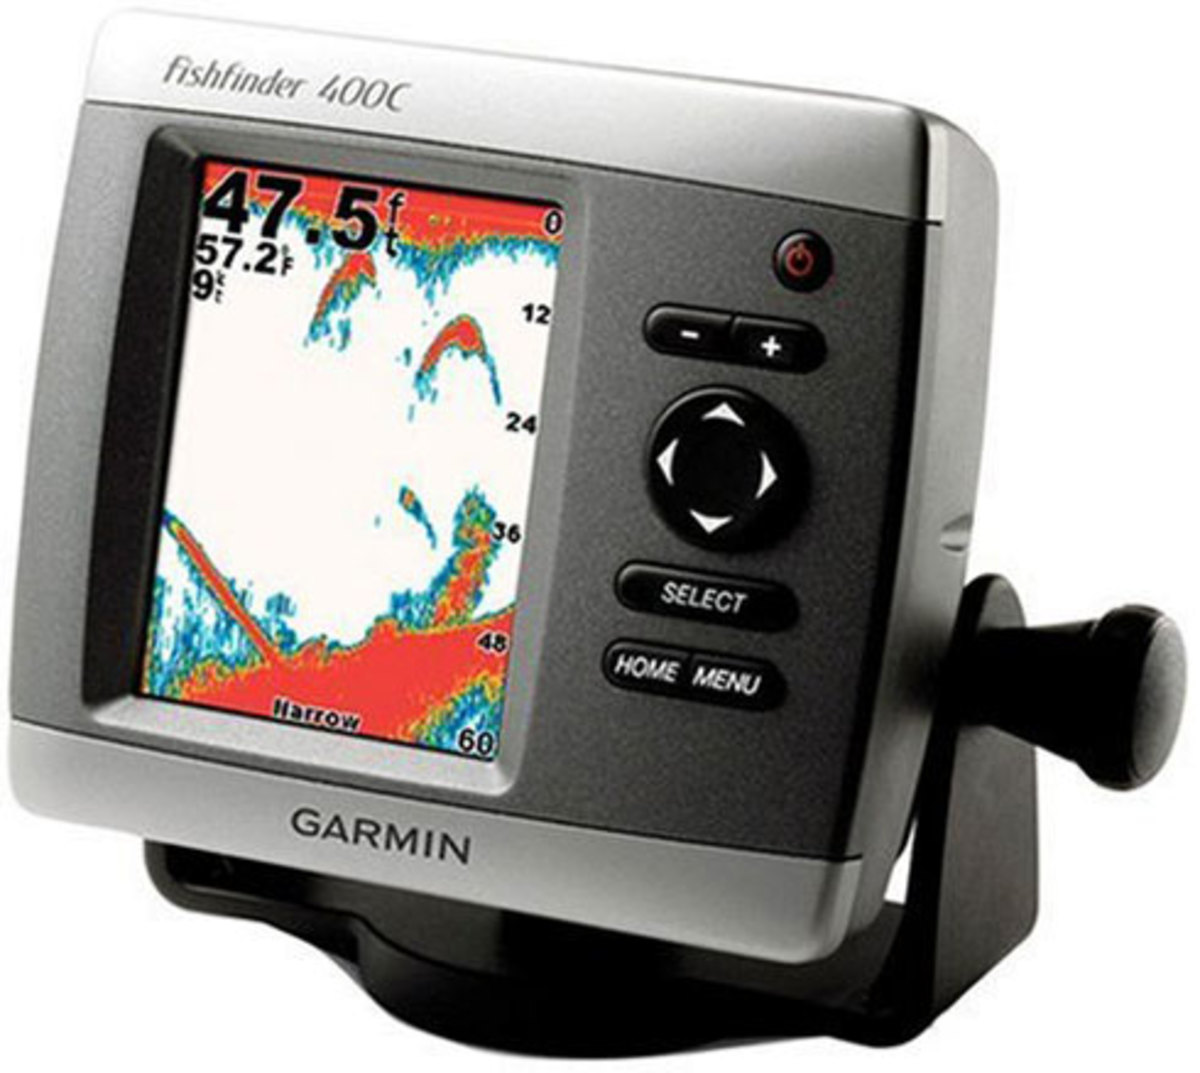 Top rated fish finder 2016